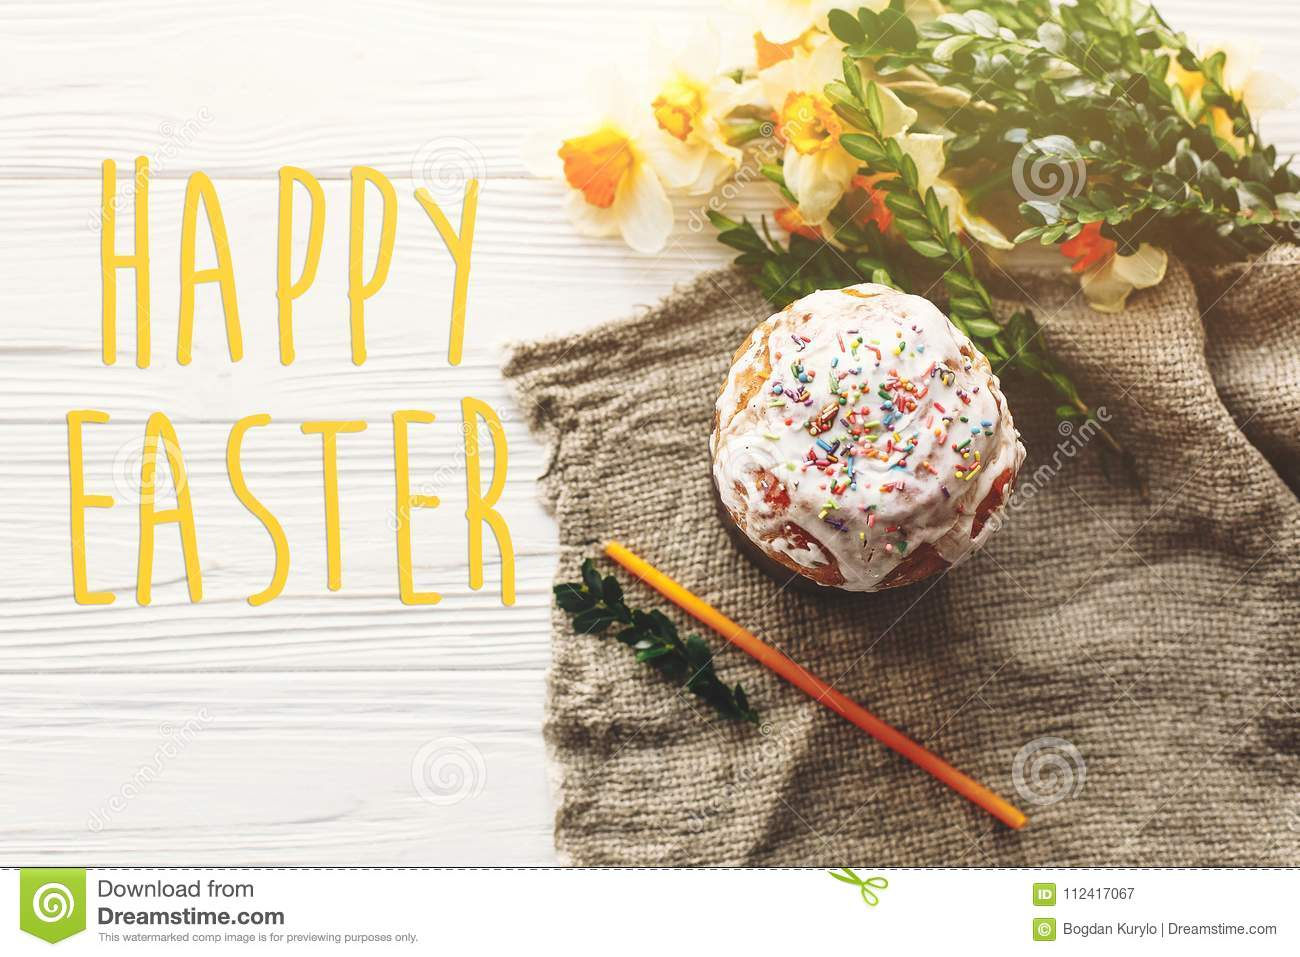 Happy Easter Text Seasons Greetings Card Stylish Easter Cake